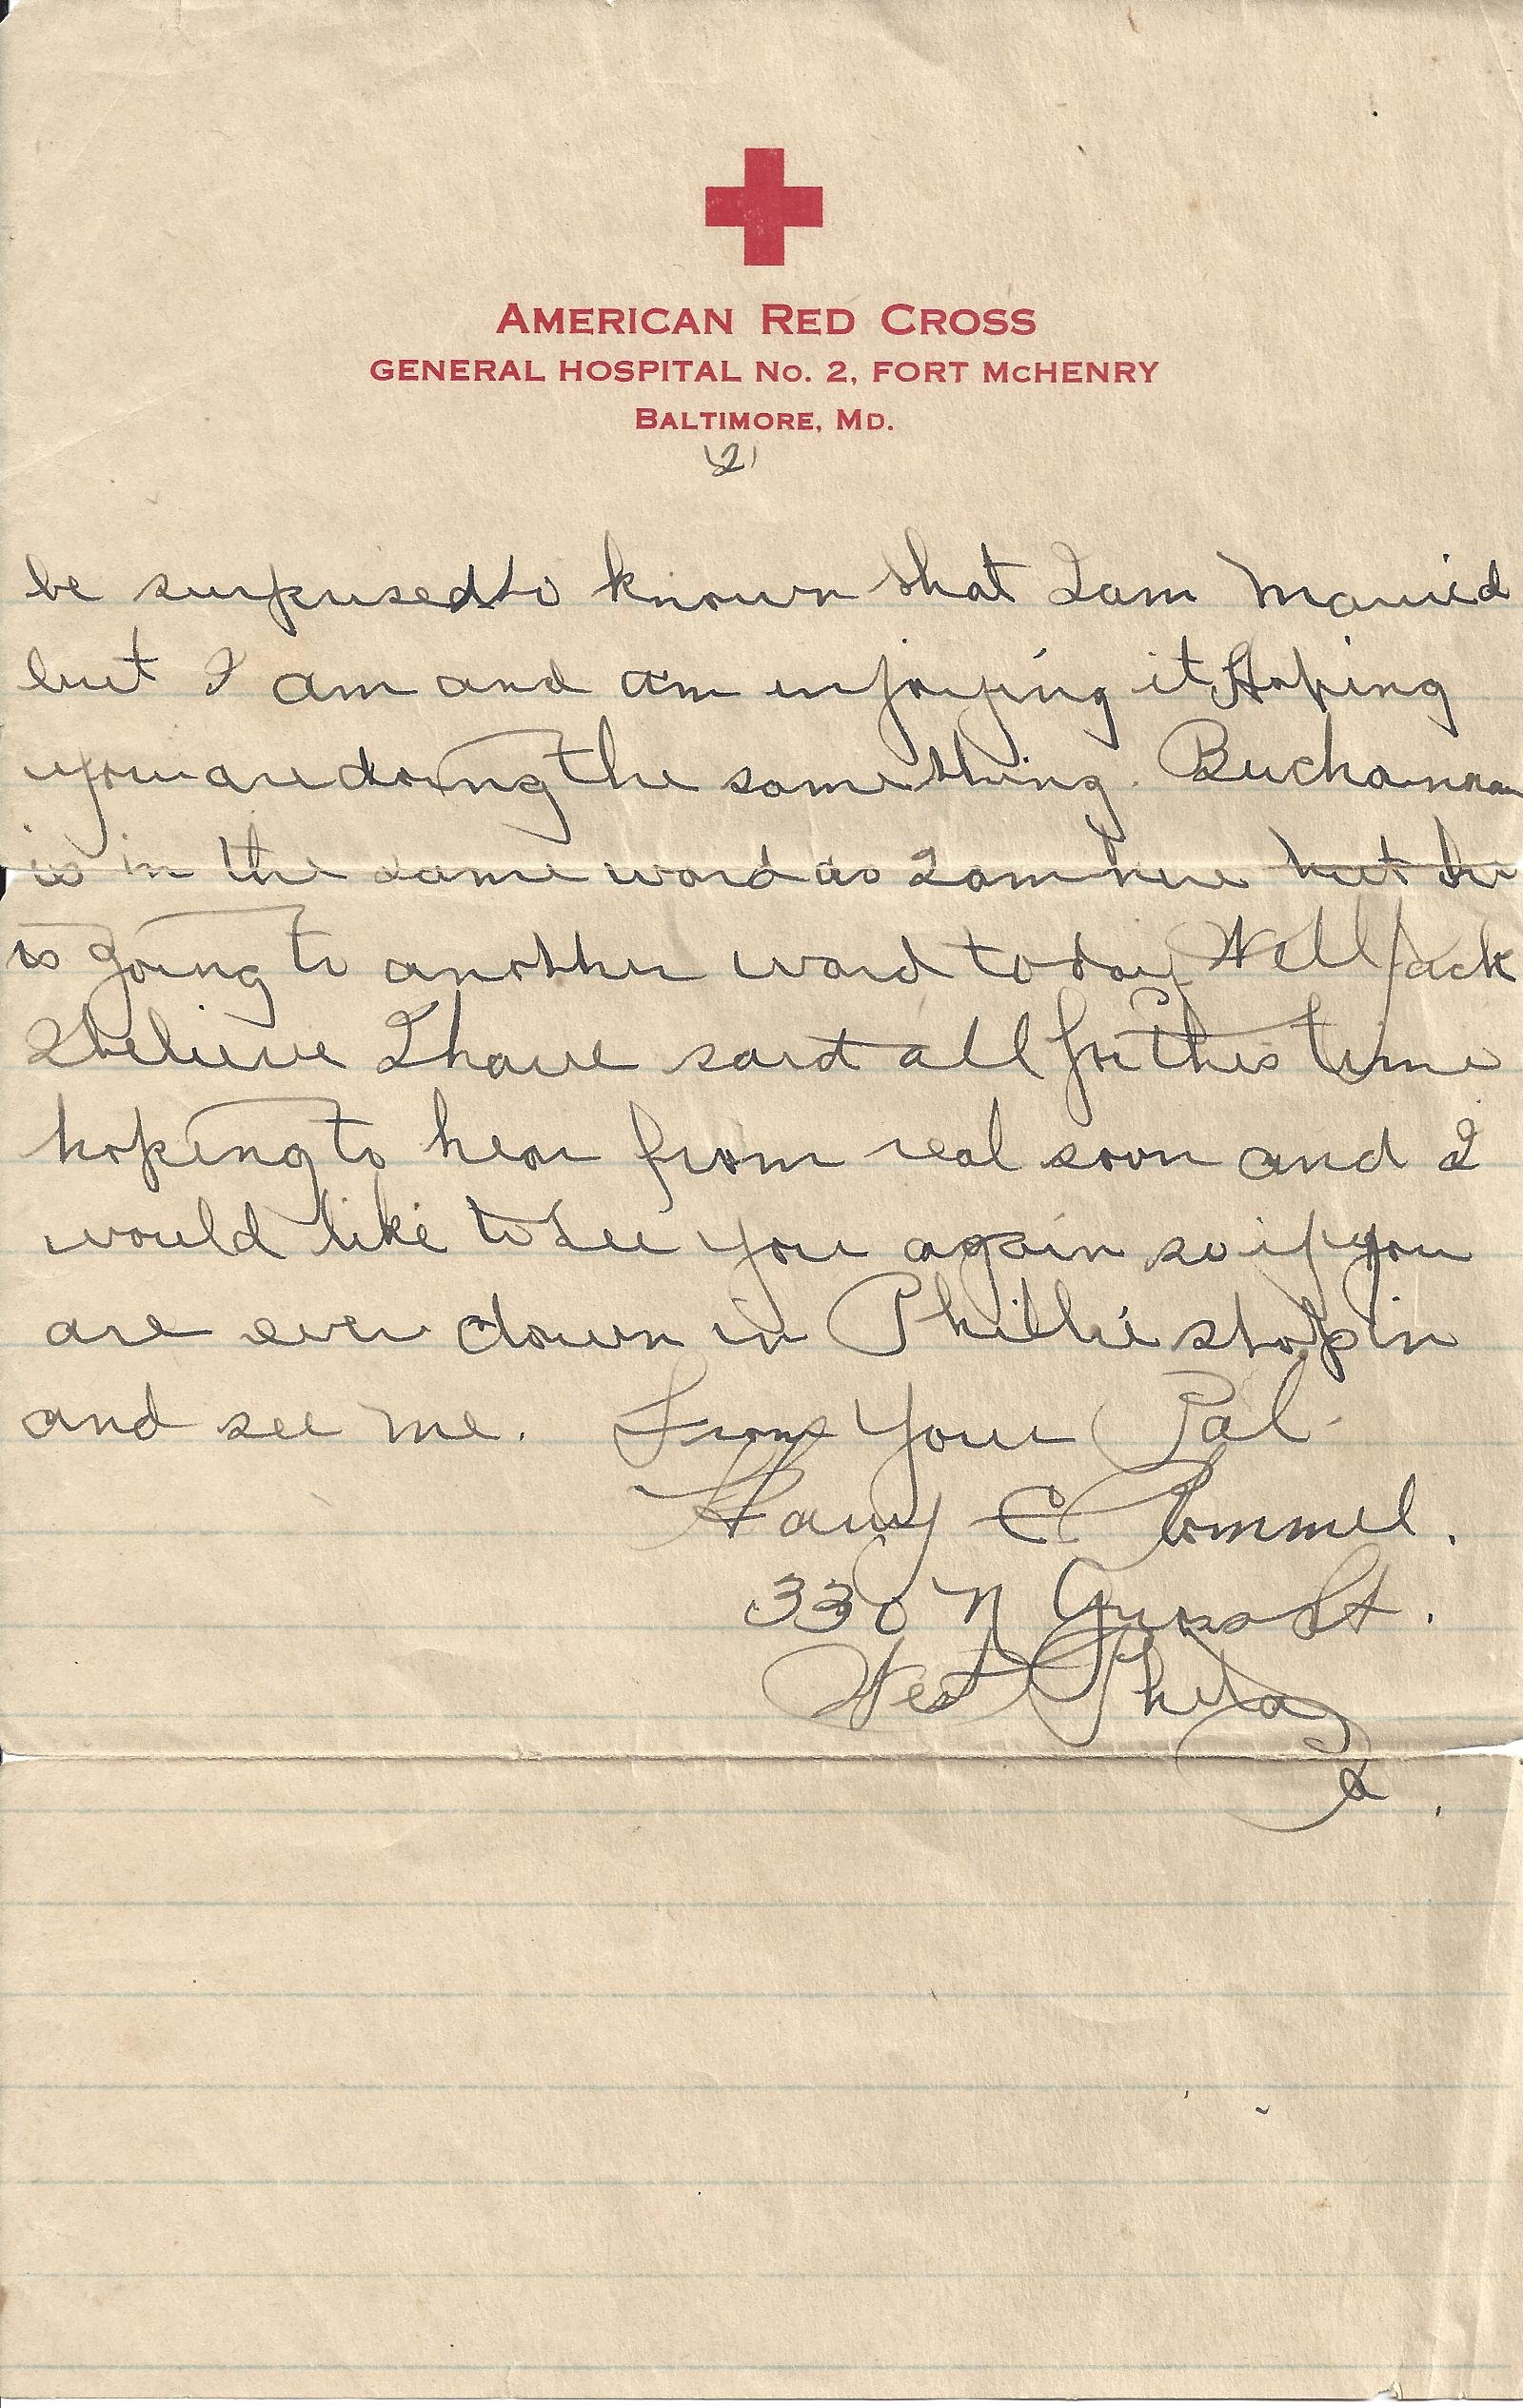 Letter from Harry Rommel in American Red Cross Hospital to John Blazosky 1919 - page 2